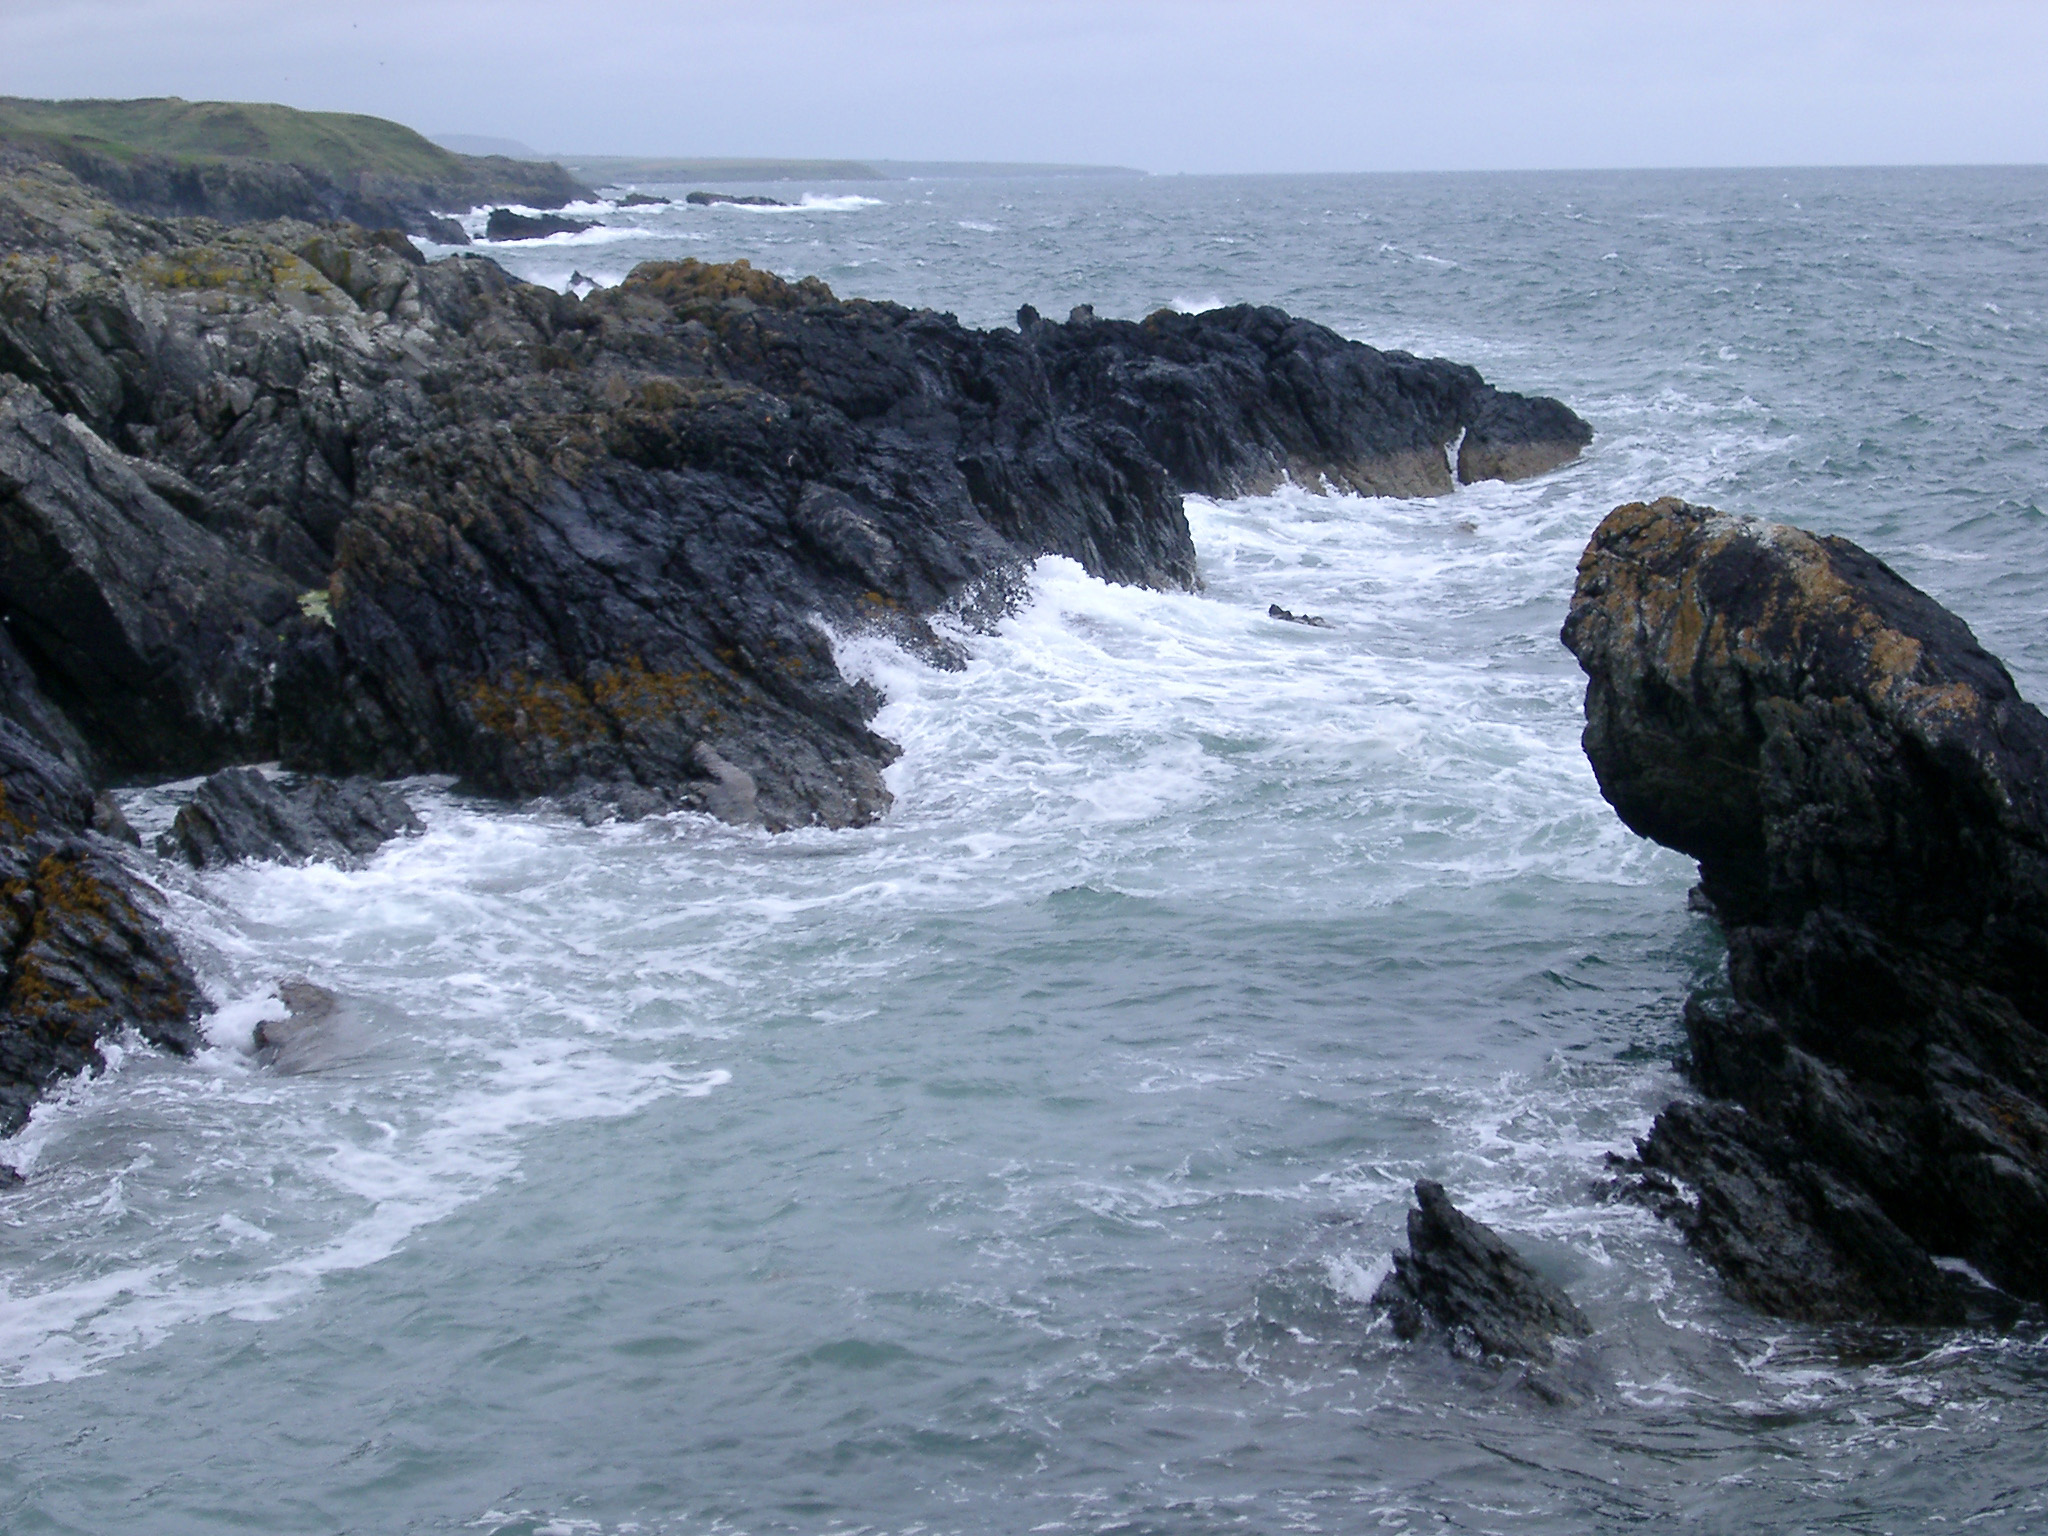 Stormy sea with breaking waves lashing a rocky coastline on a grey misty day